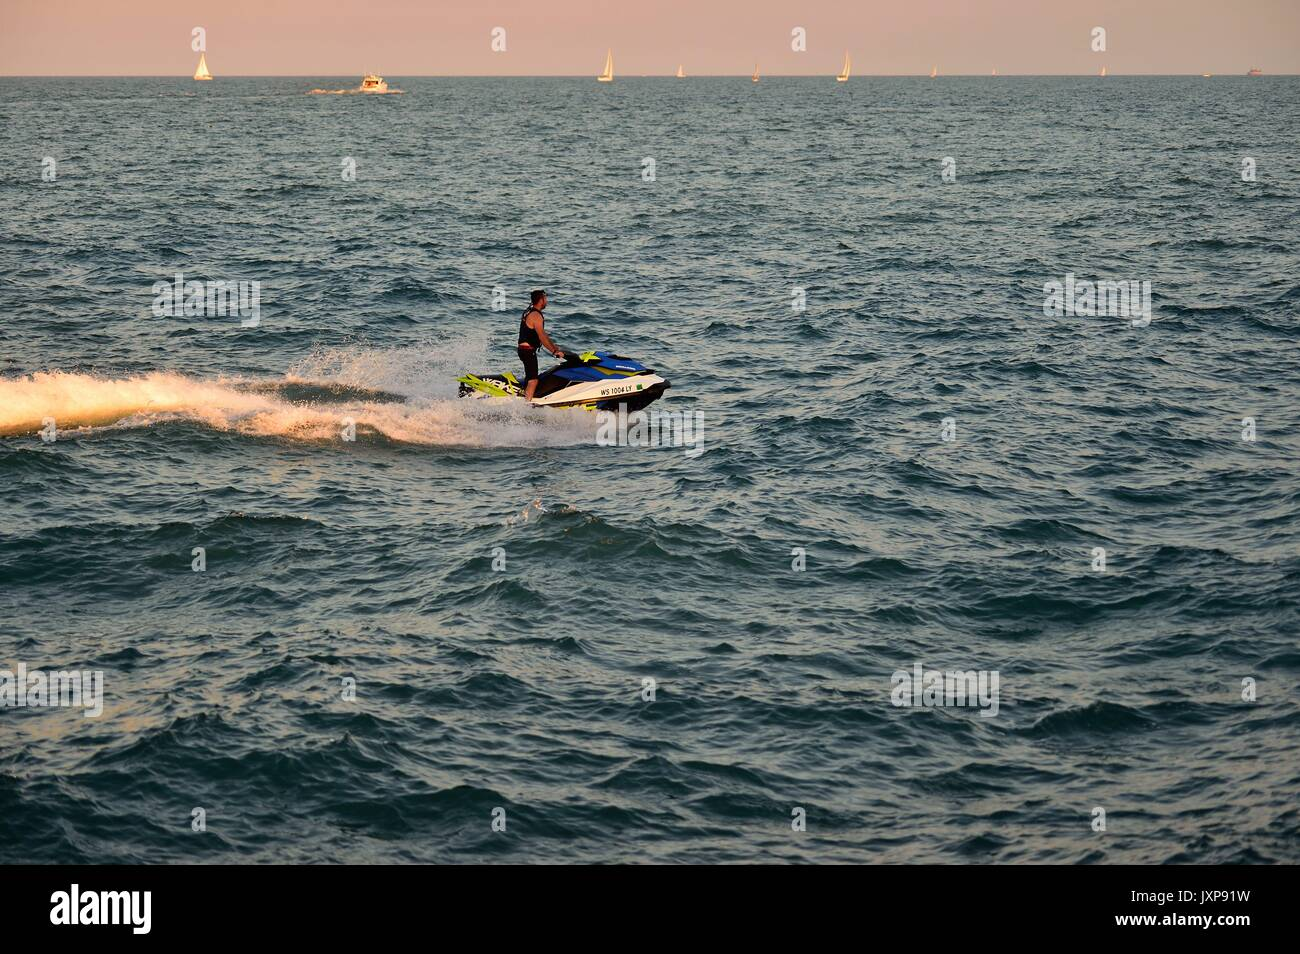 Man piloting a watercraft on Lake Michigan just outside Chicago's Diversey Harbor. Chicago, Illinois, USA. - Stock Image